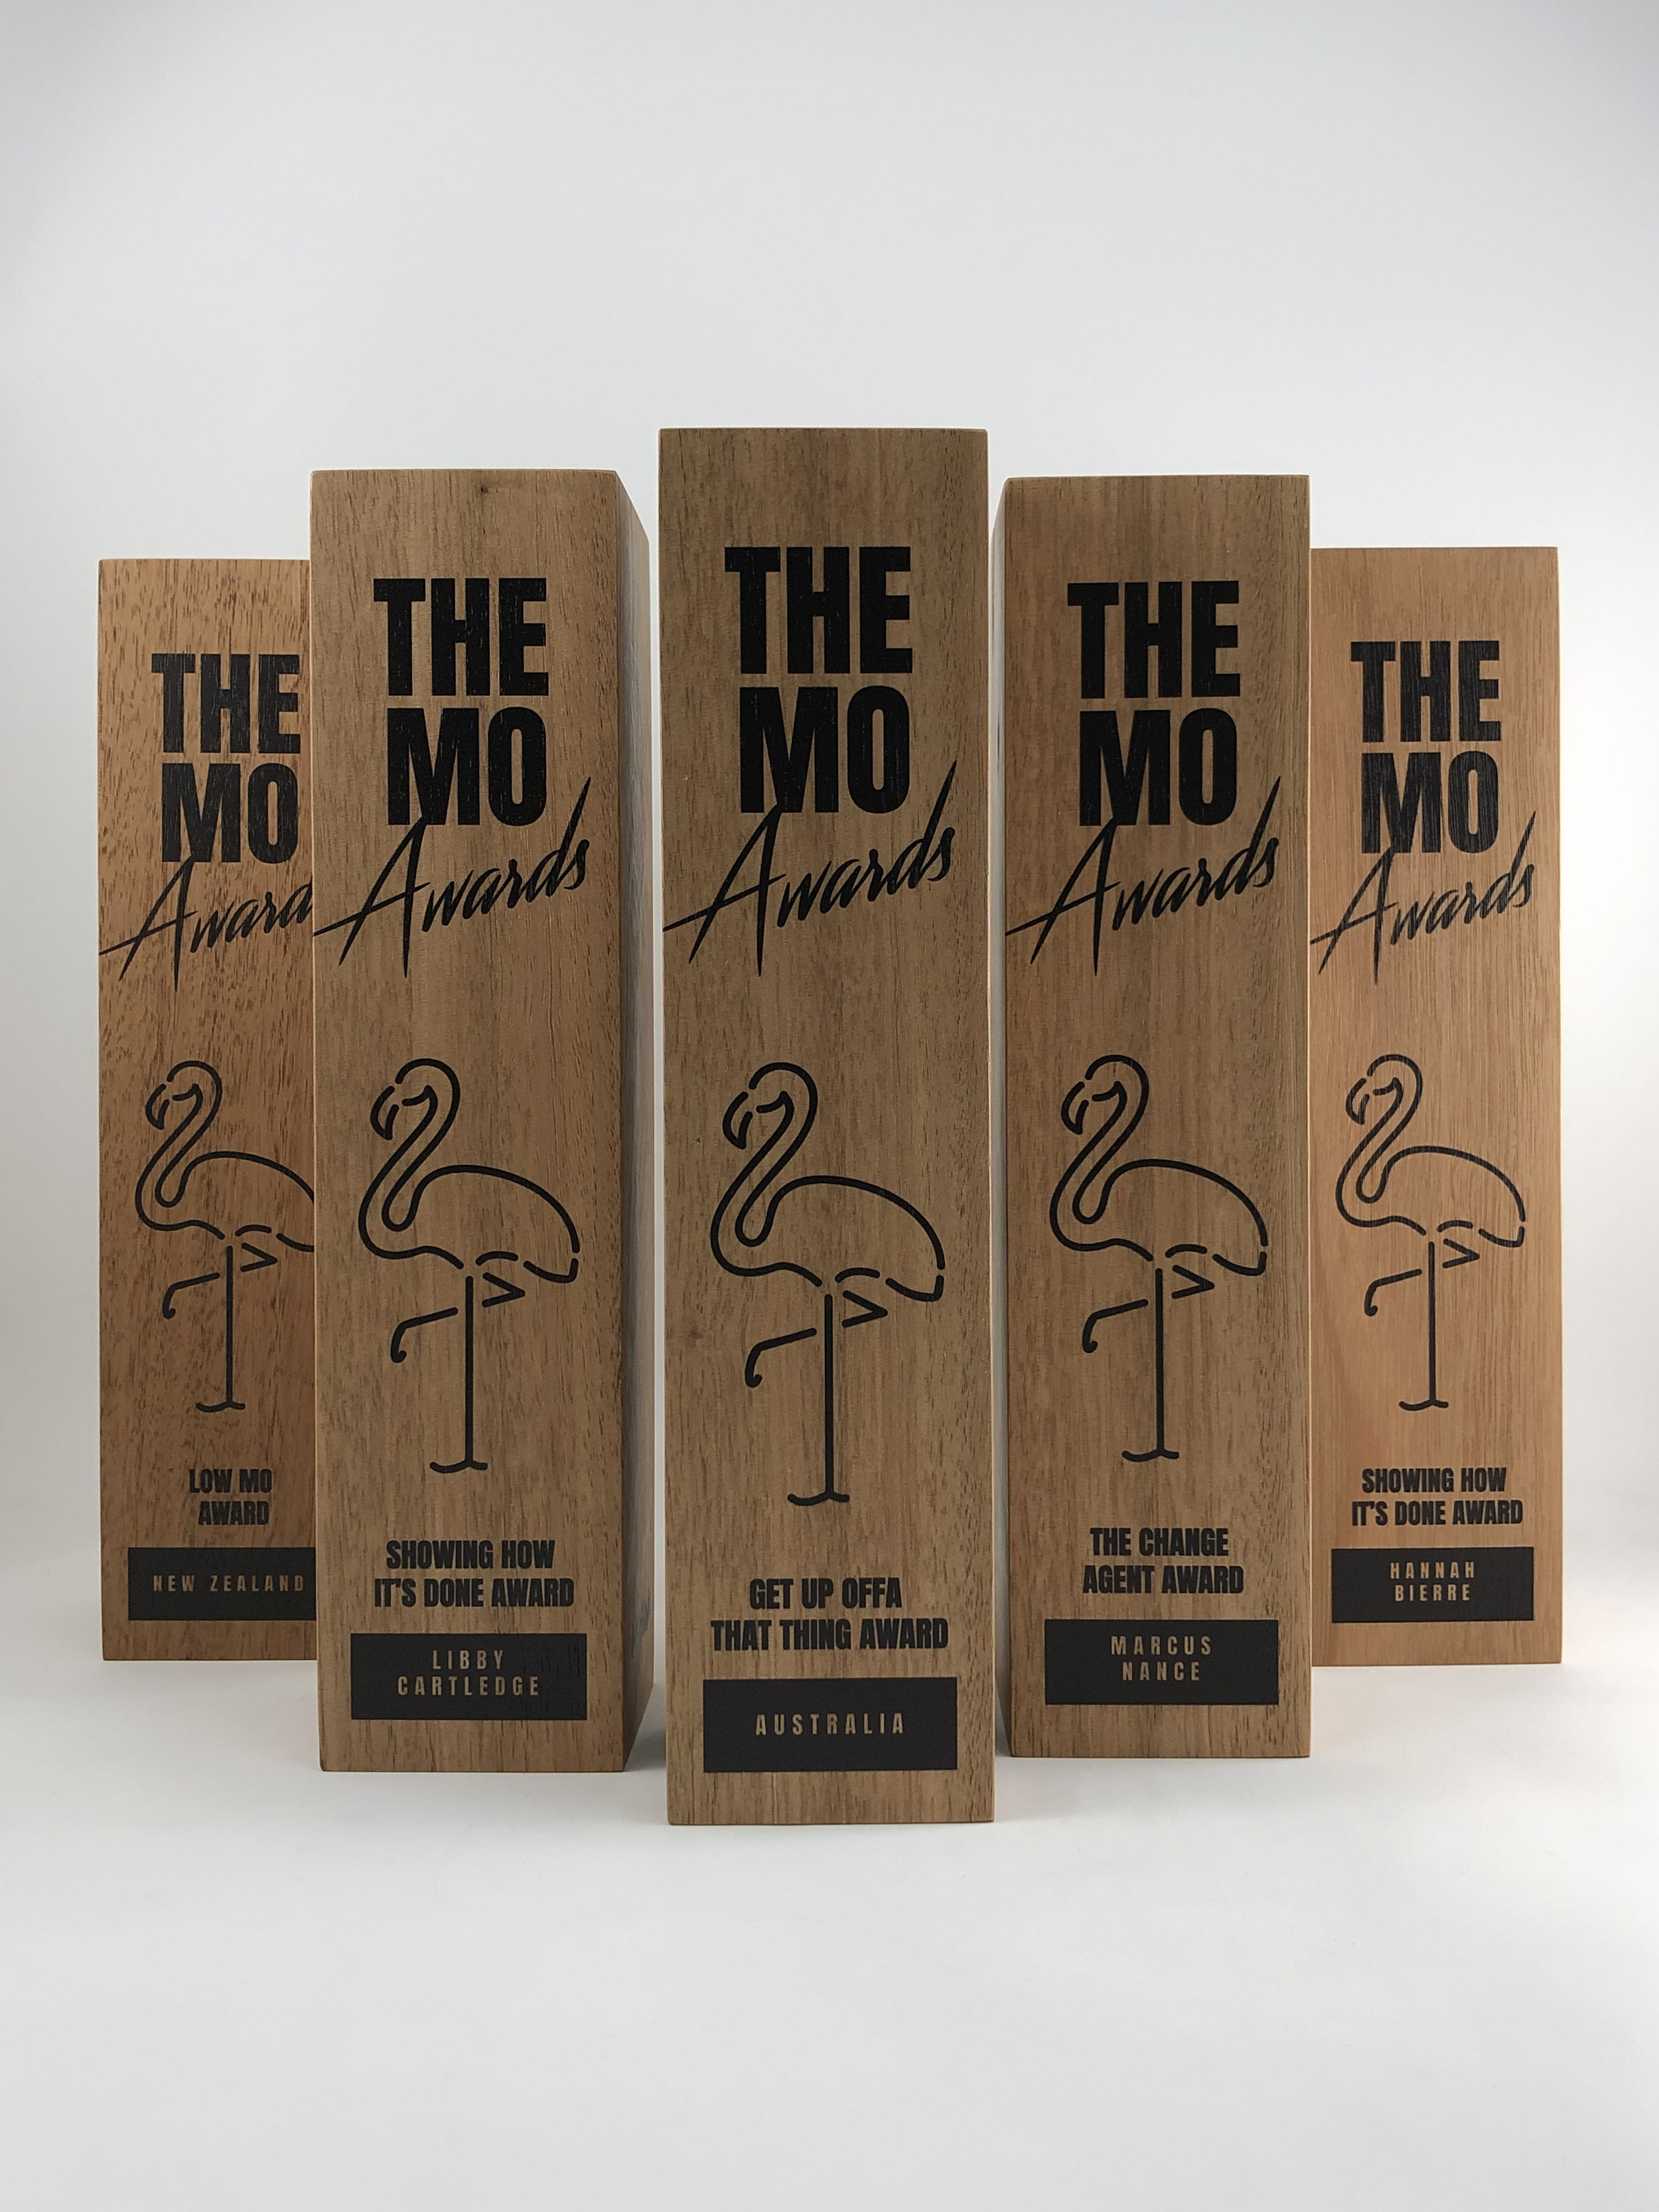 movember-mo-awards-reclaimed-timber-trophy-03.jpg